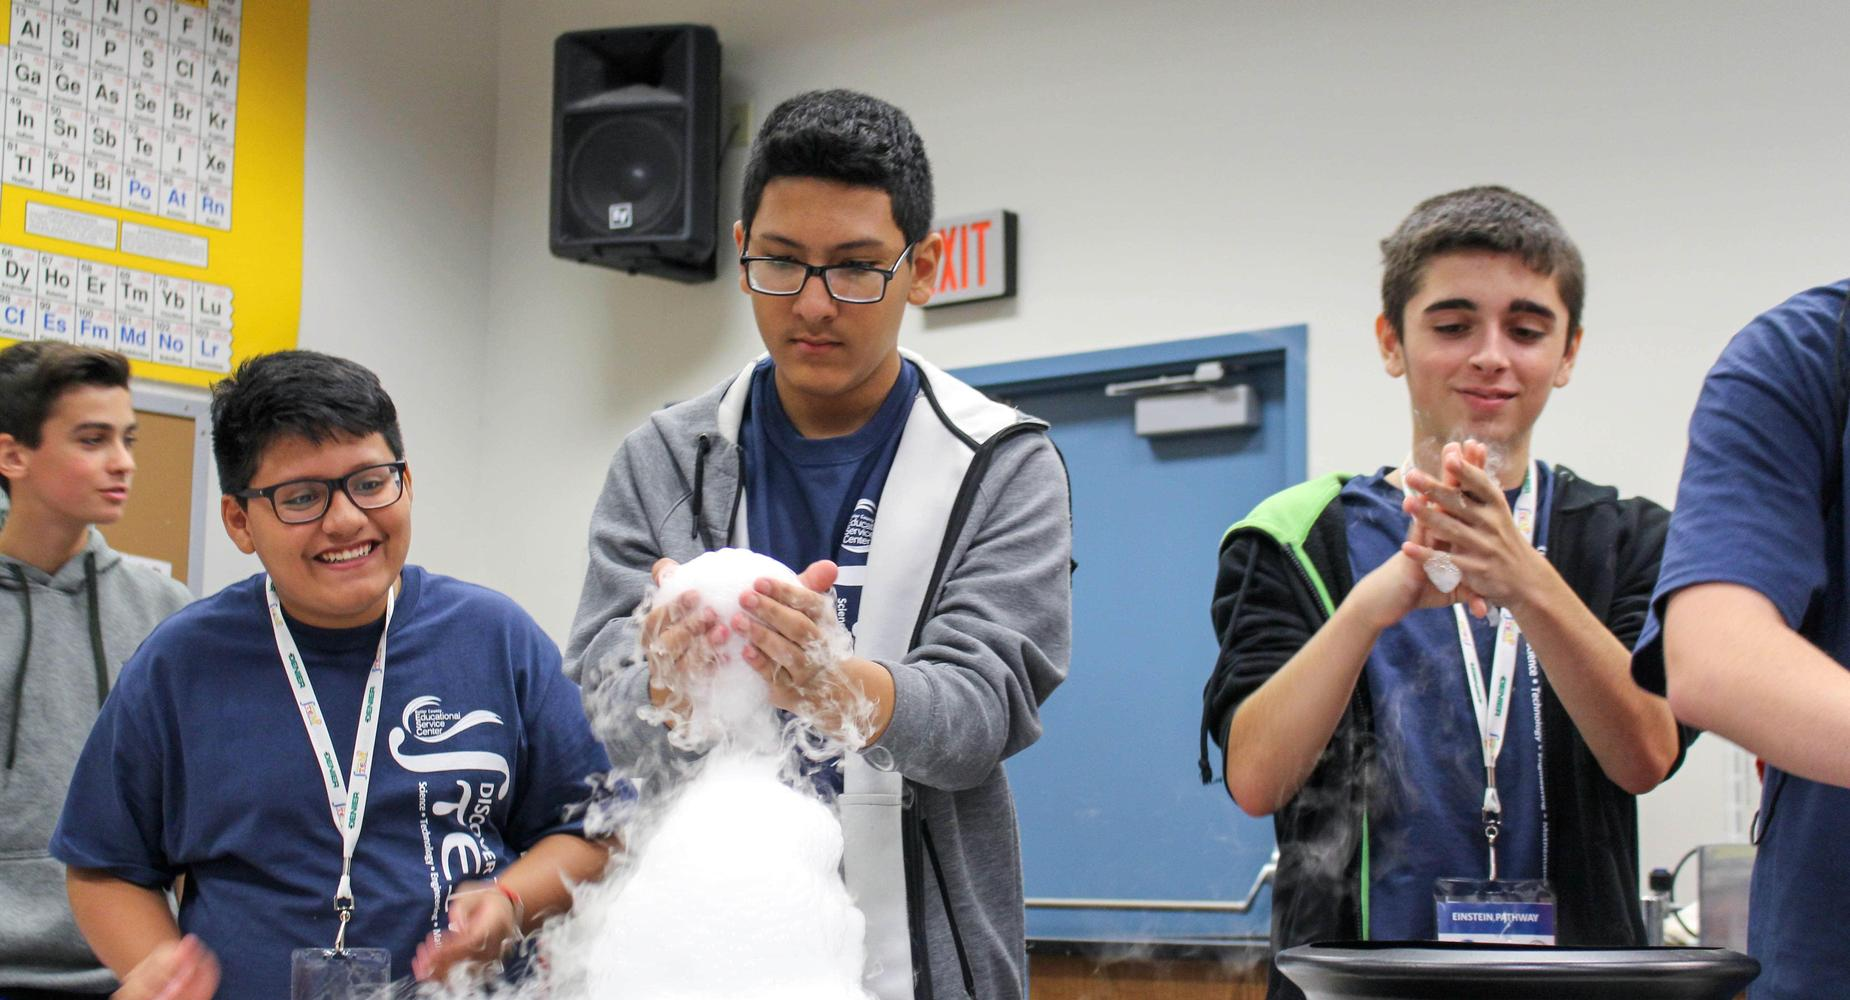 Three male middle school students play with artificial clouds at the Discover STEM Conference hosted by Miami University Regionals